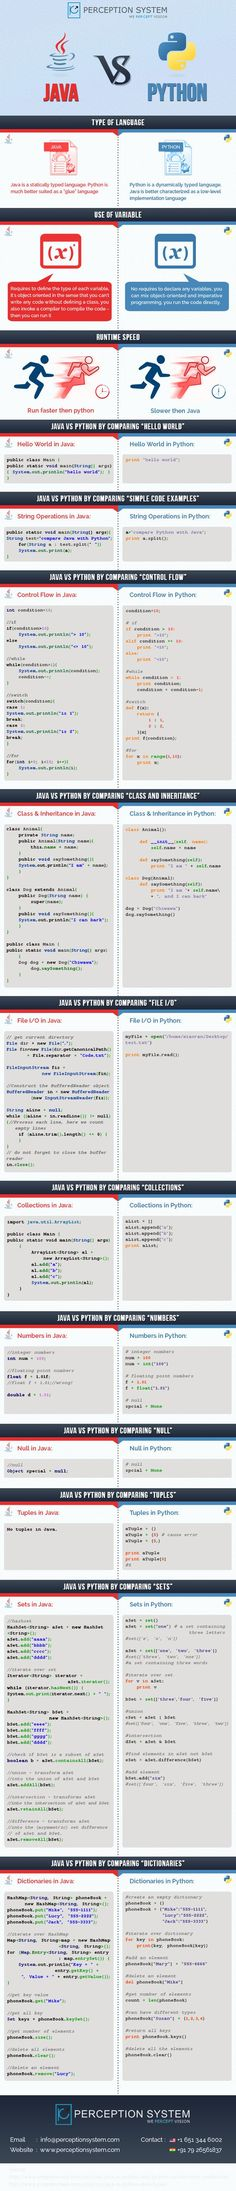 Java Vs. Python- Which Programming Language is More Productive?...  #java #python #infographic: